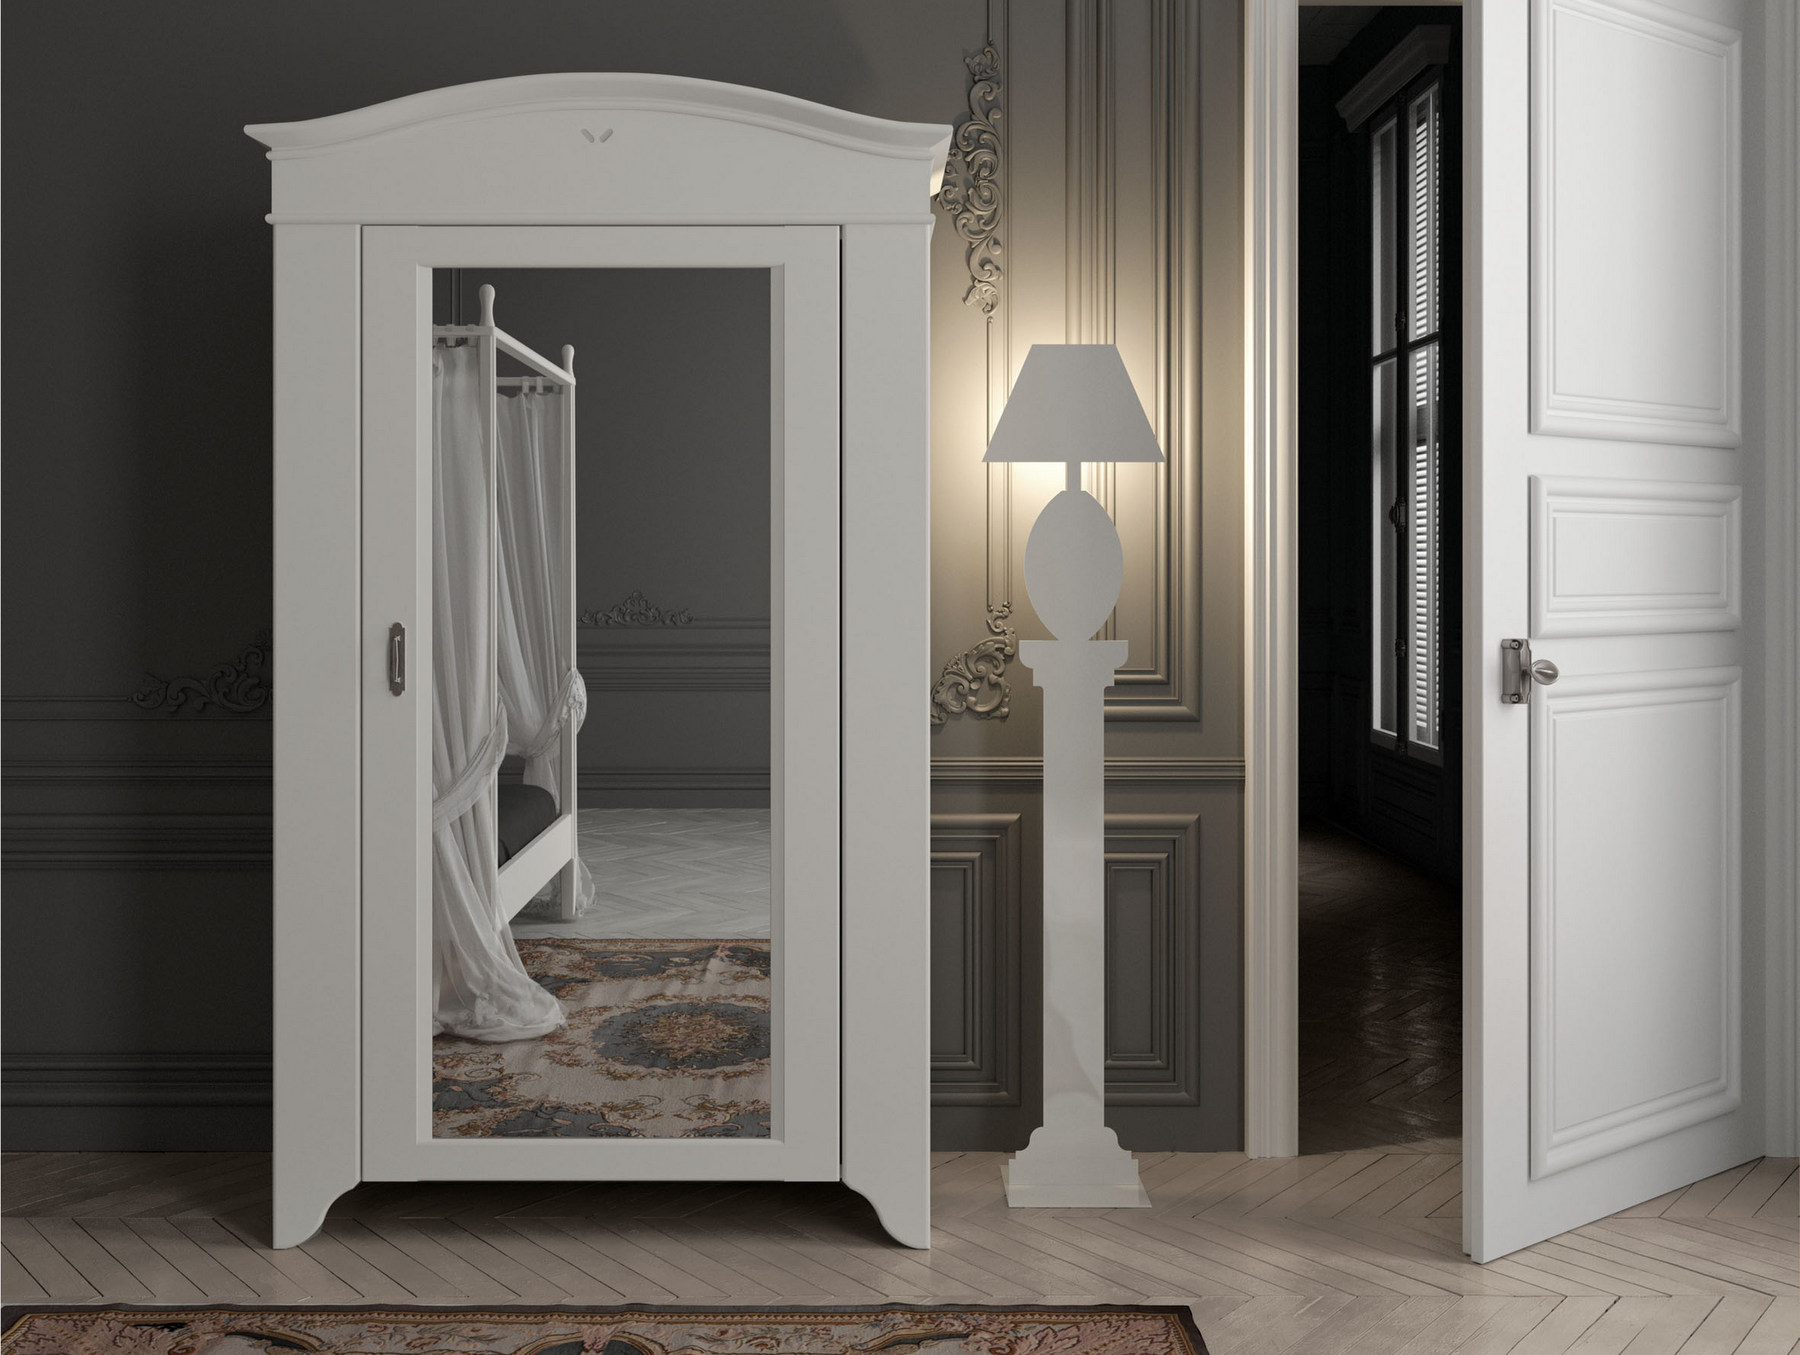 seguret armoire glace by minacciolo. Black Bedroom Furniture Sets. Home Design Ideas